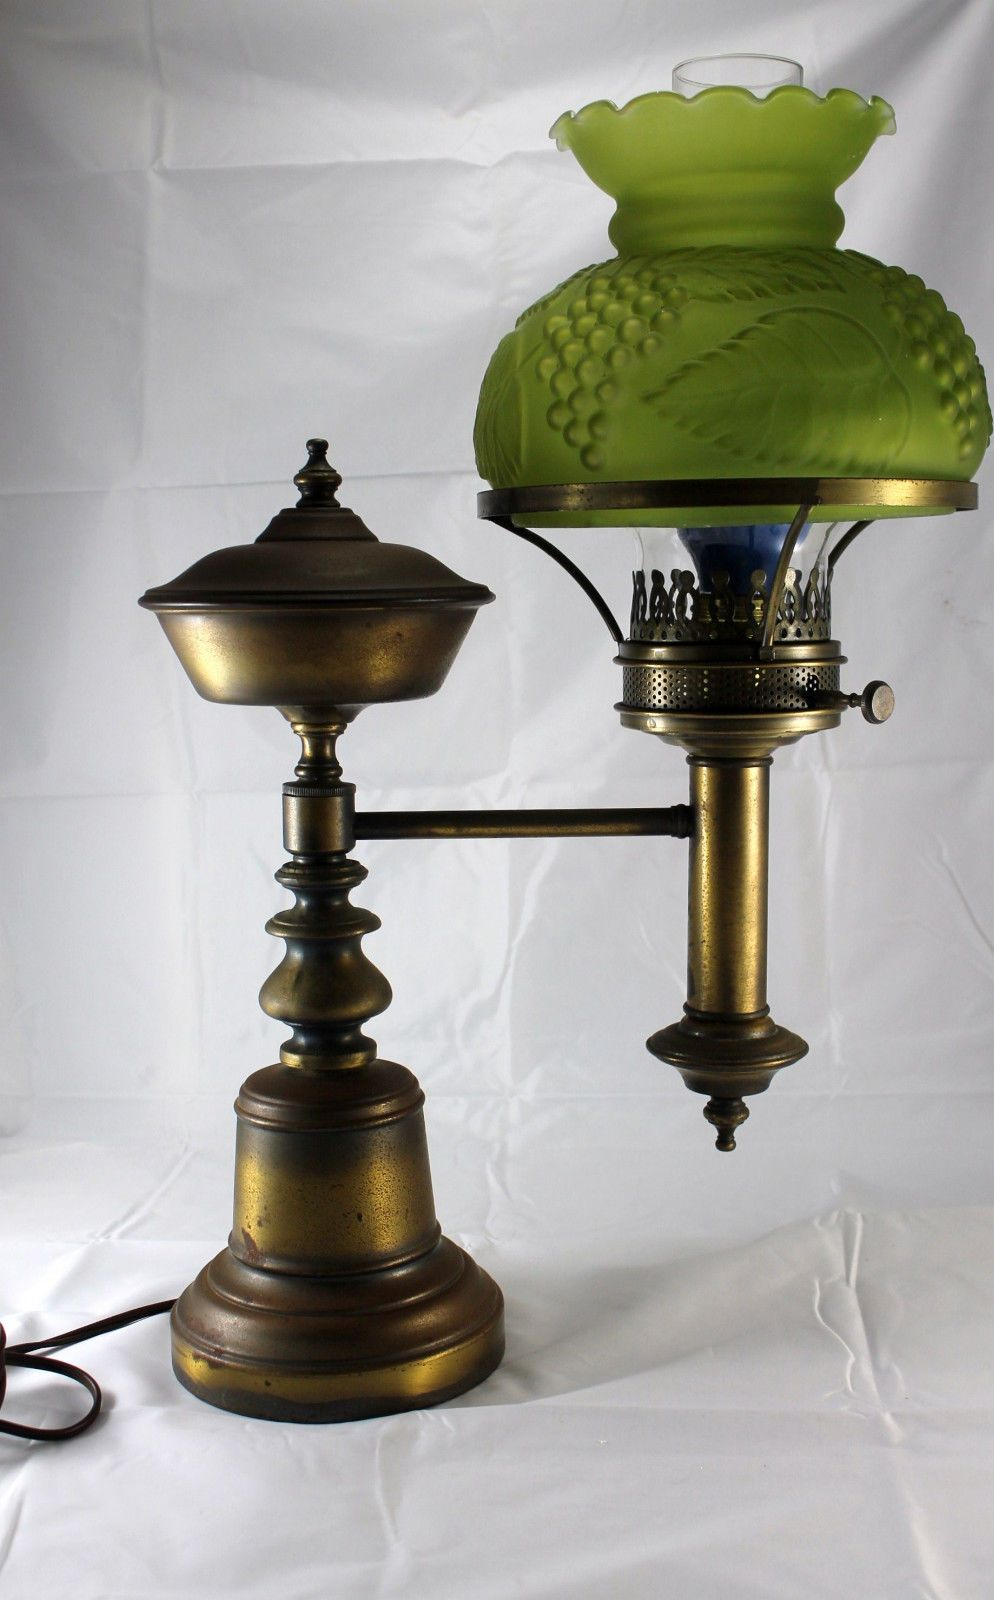 Antique brass student lamp original oil kerosene lamp green antique brass student lamp original oil kerosene lamp green grape glass shade mozeypictures